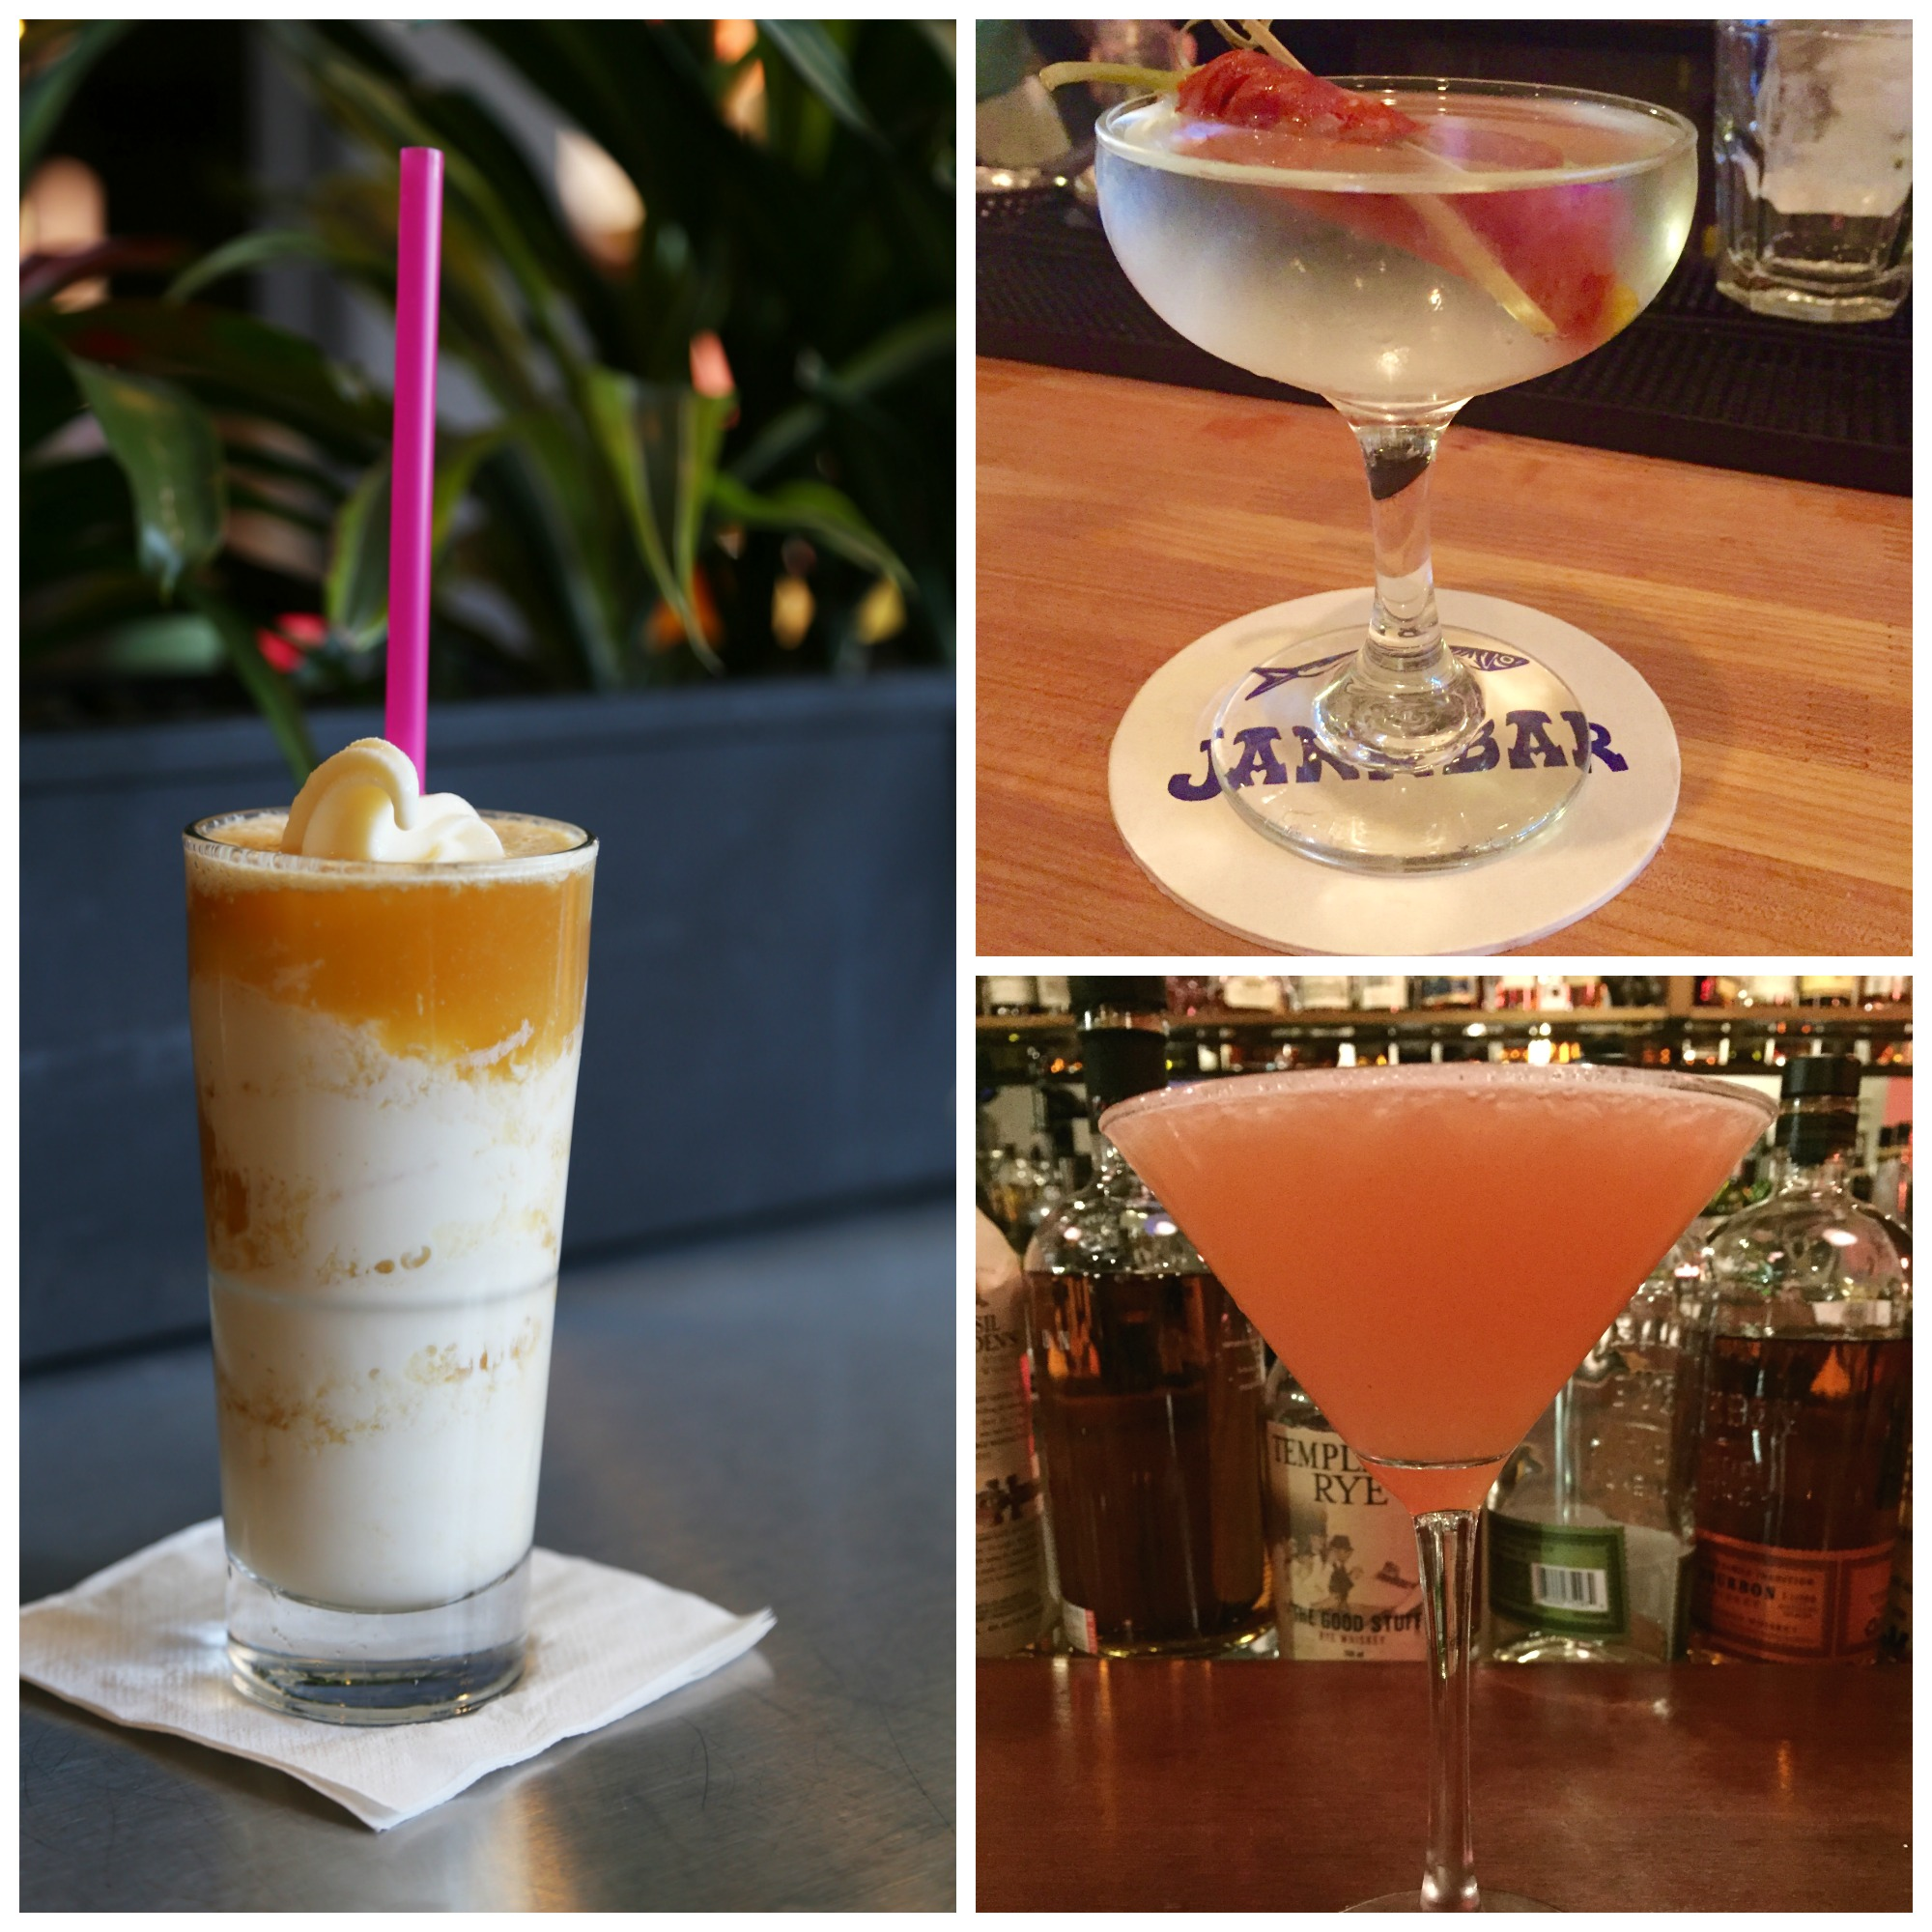 Left: Rachel's Ginger Beer Boozey Float, Top Right: Jarr Bar El Cochino, Bottom Right: Place Pigalle La Salle